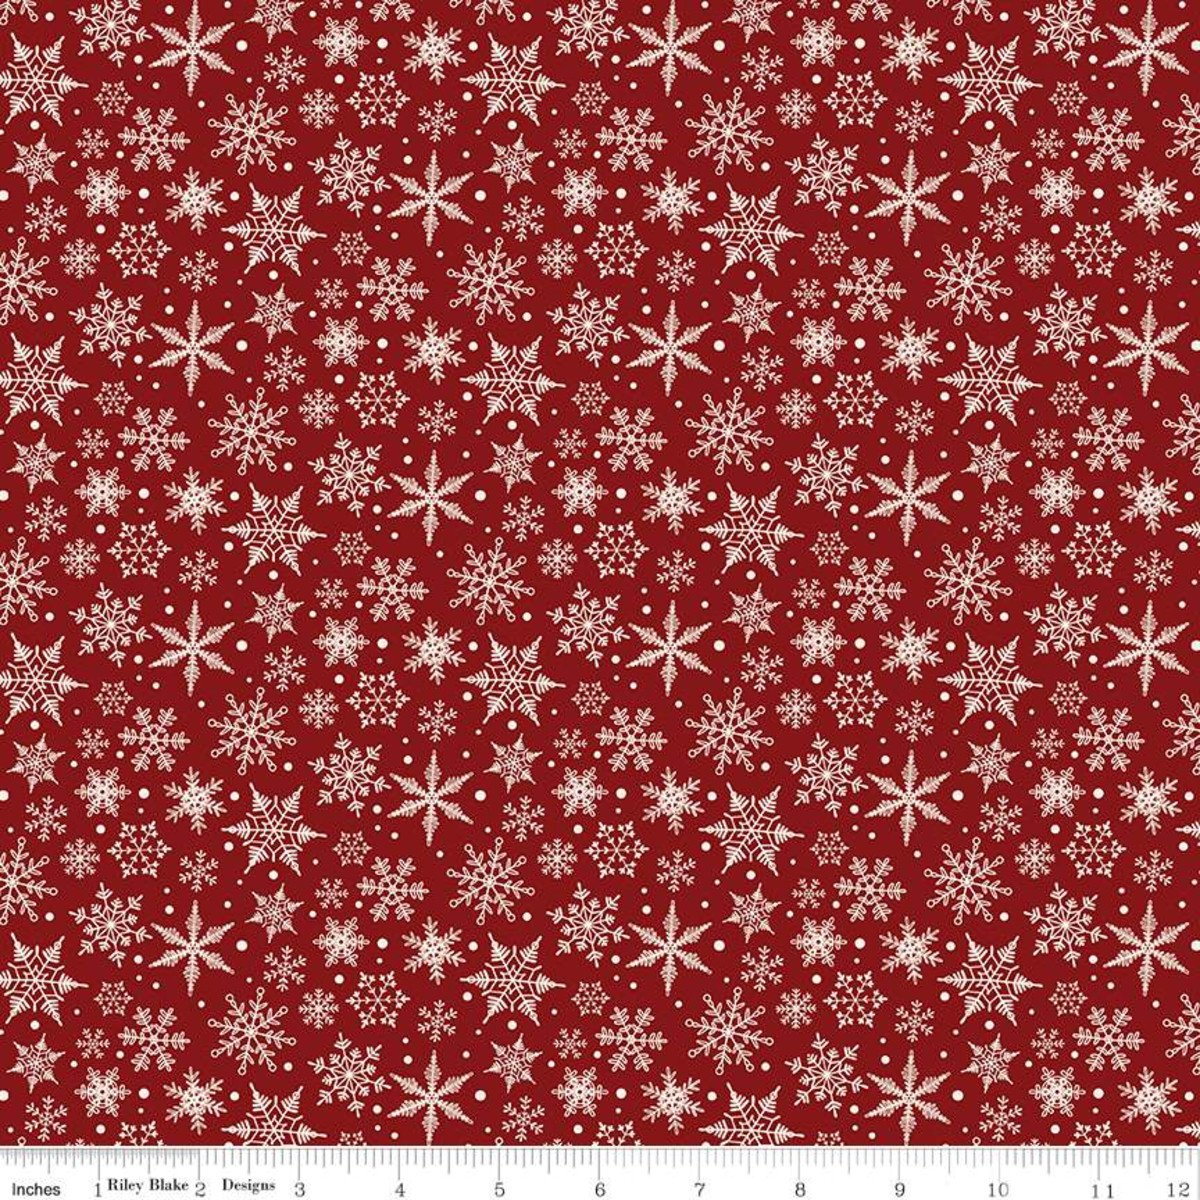 Christmas Traditions Snowflakes Red C9597-RED